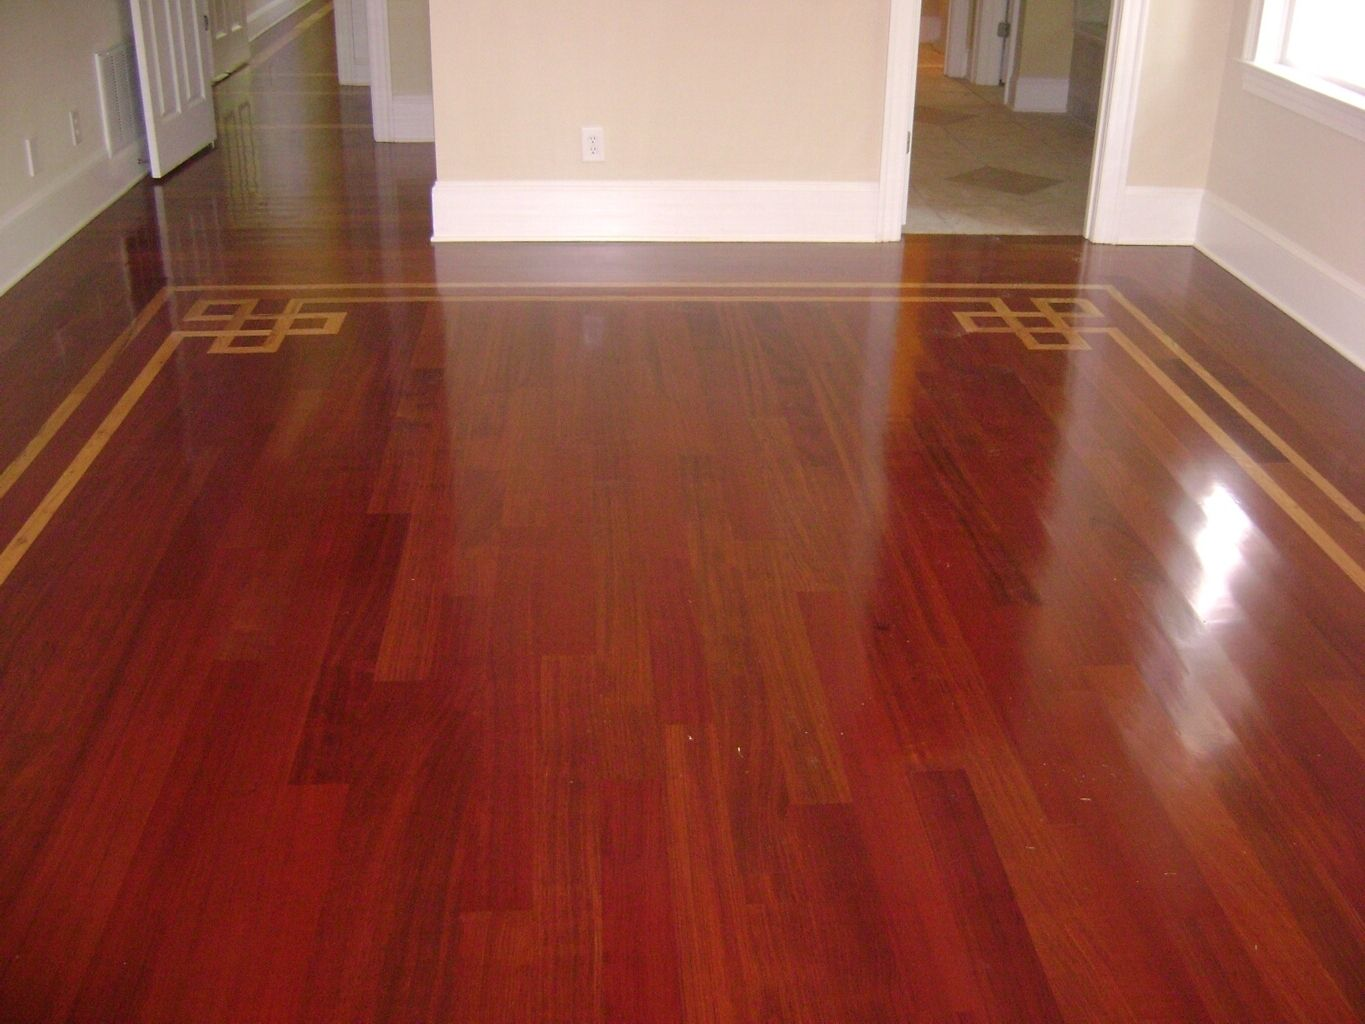 How To Clean Wooden Floor Tiles Cleaning